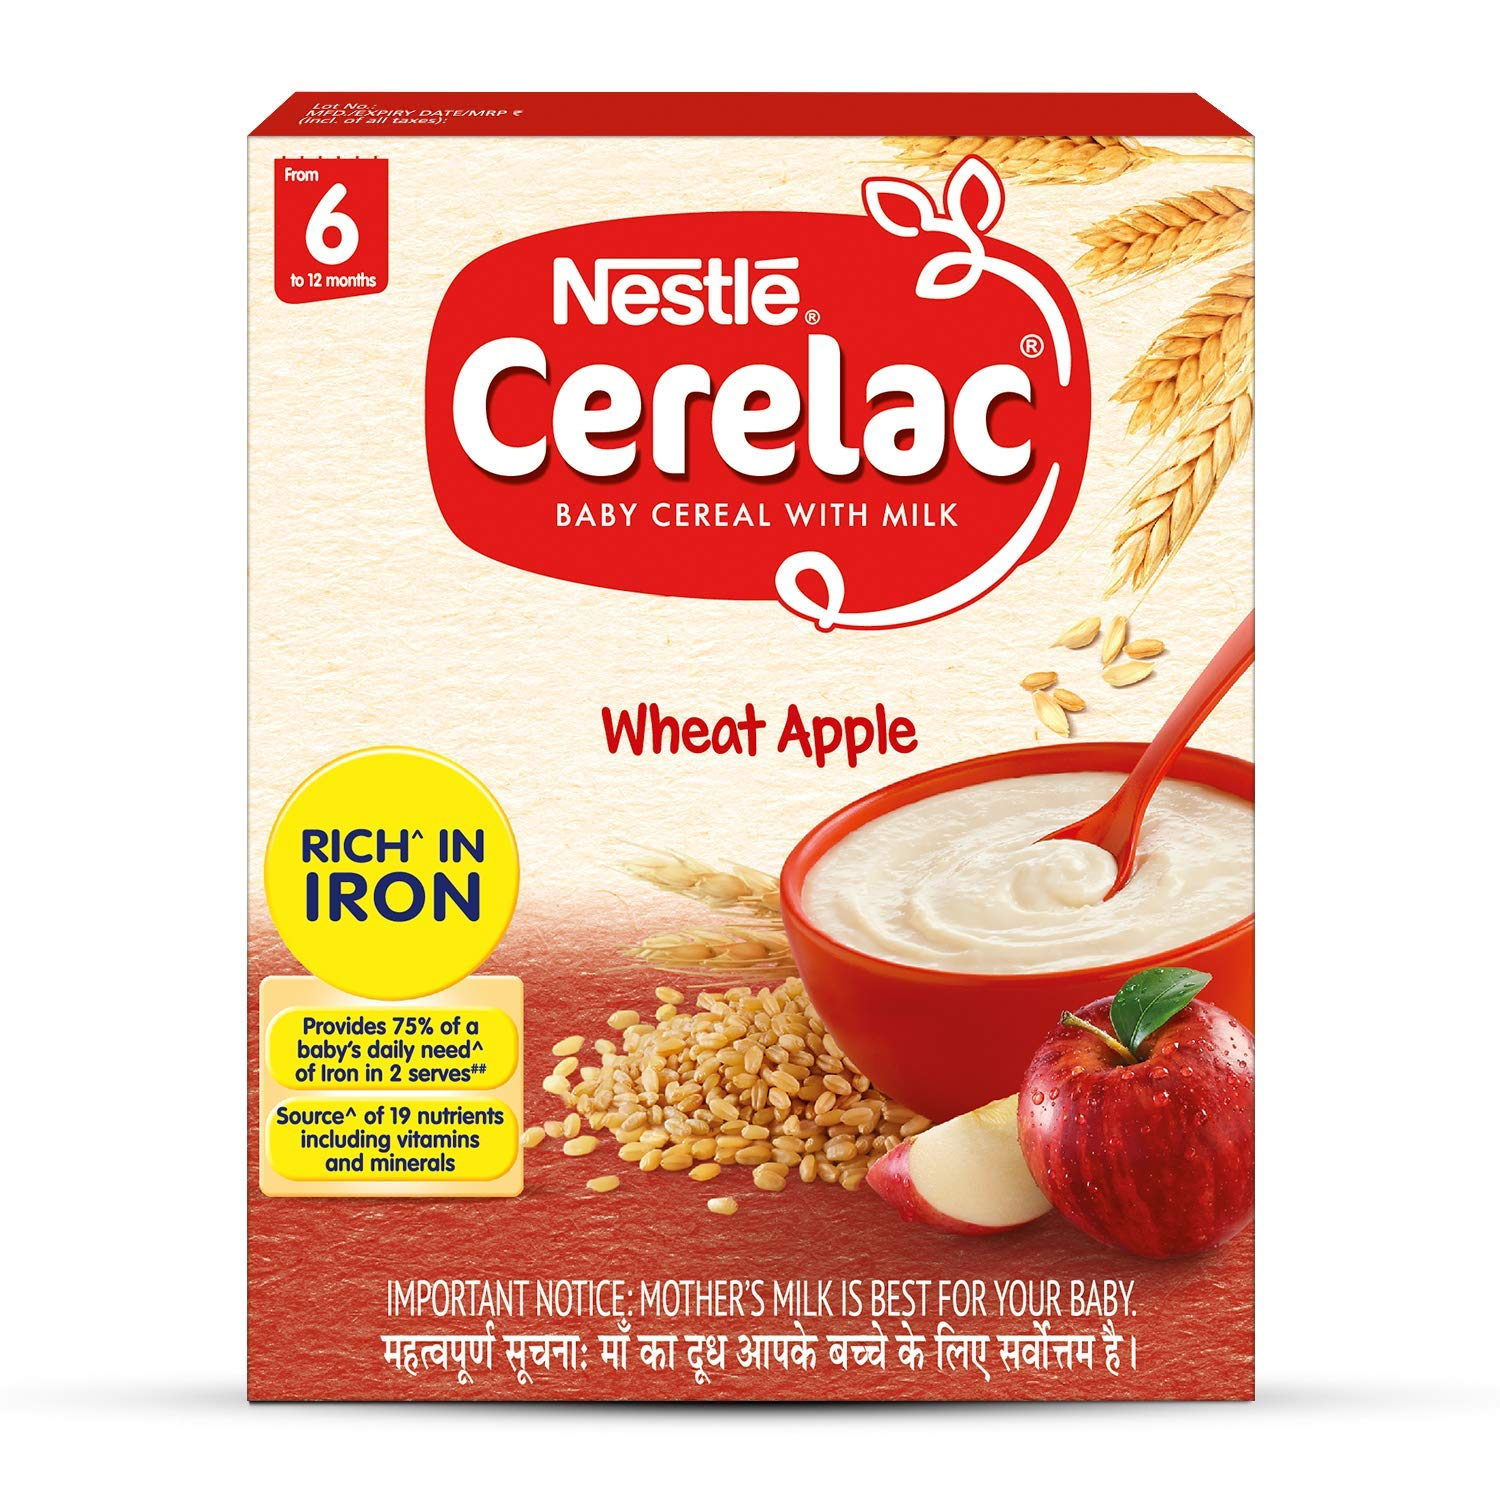 Nestlé Cerelac Infant Cereal Stage-1 (6 Months-24 Months) Wheat Apple 300g